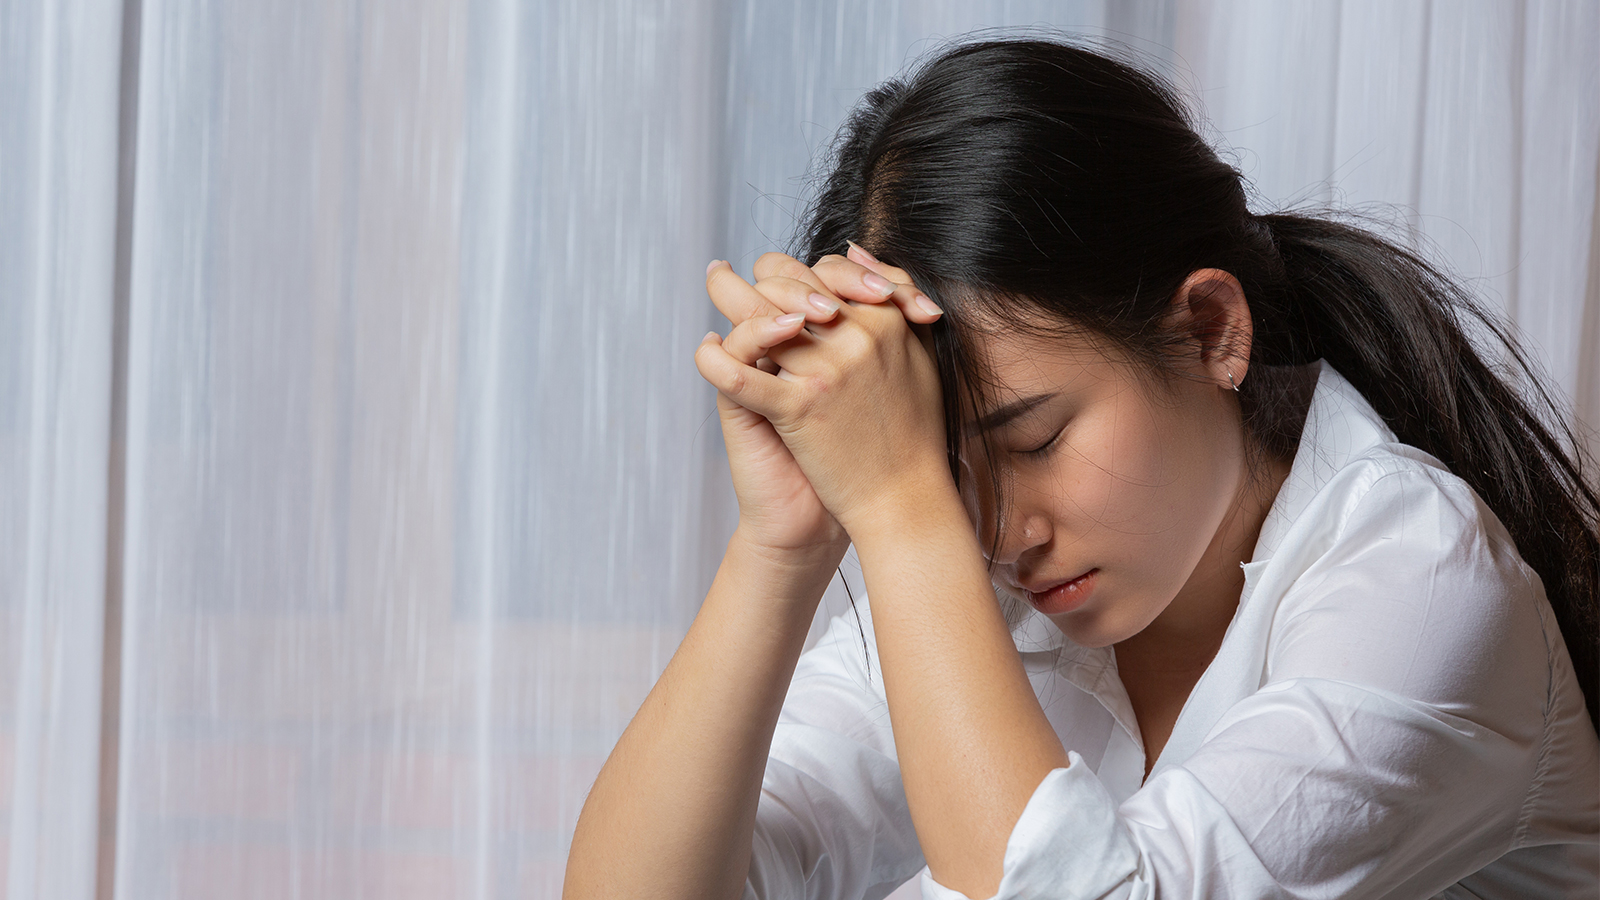 Overcoming Grief: How to Deal With a Loved One's Loss?